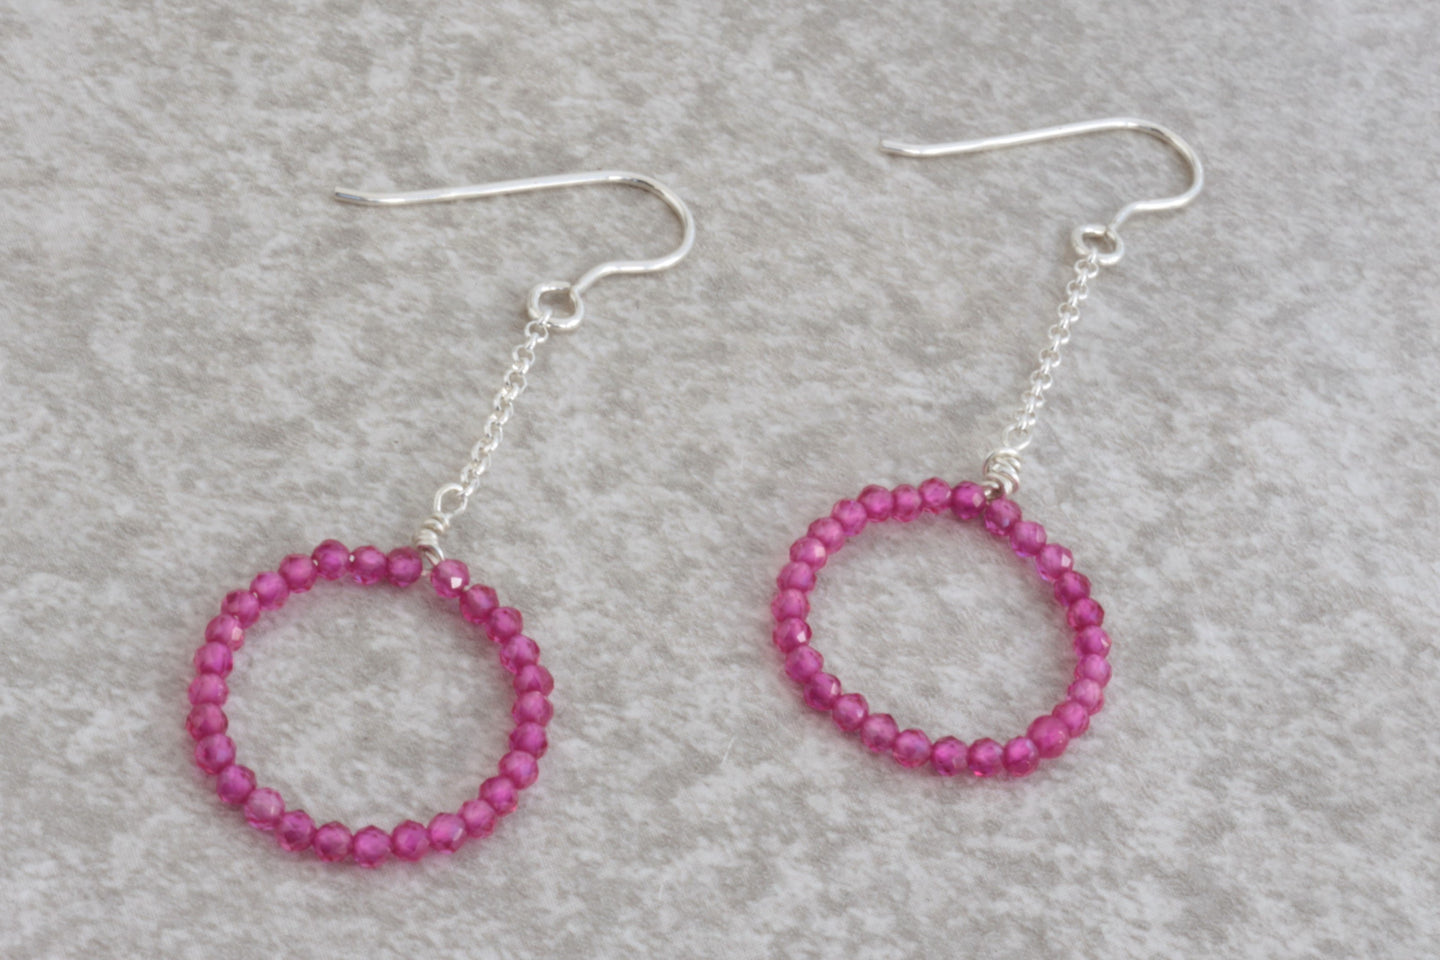 Fuchsia_ruby_long_dangle_earrings_for_women_silver